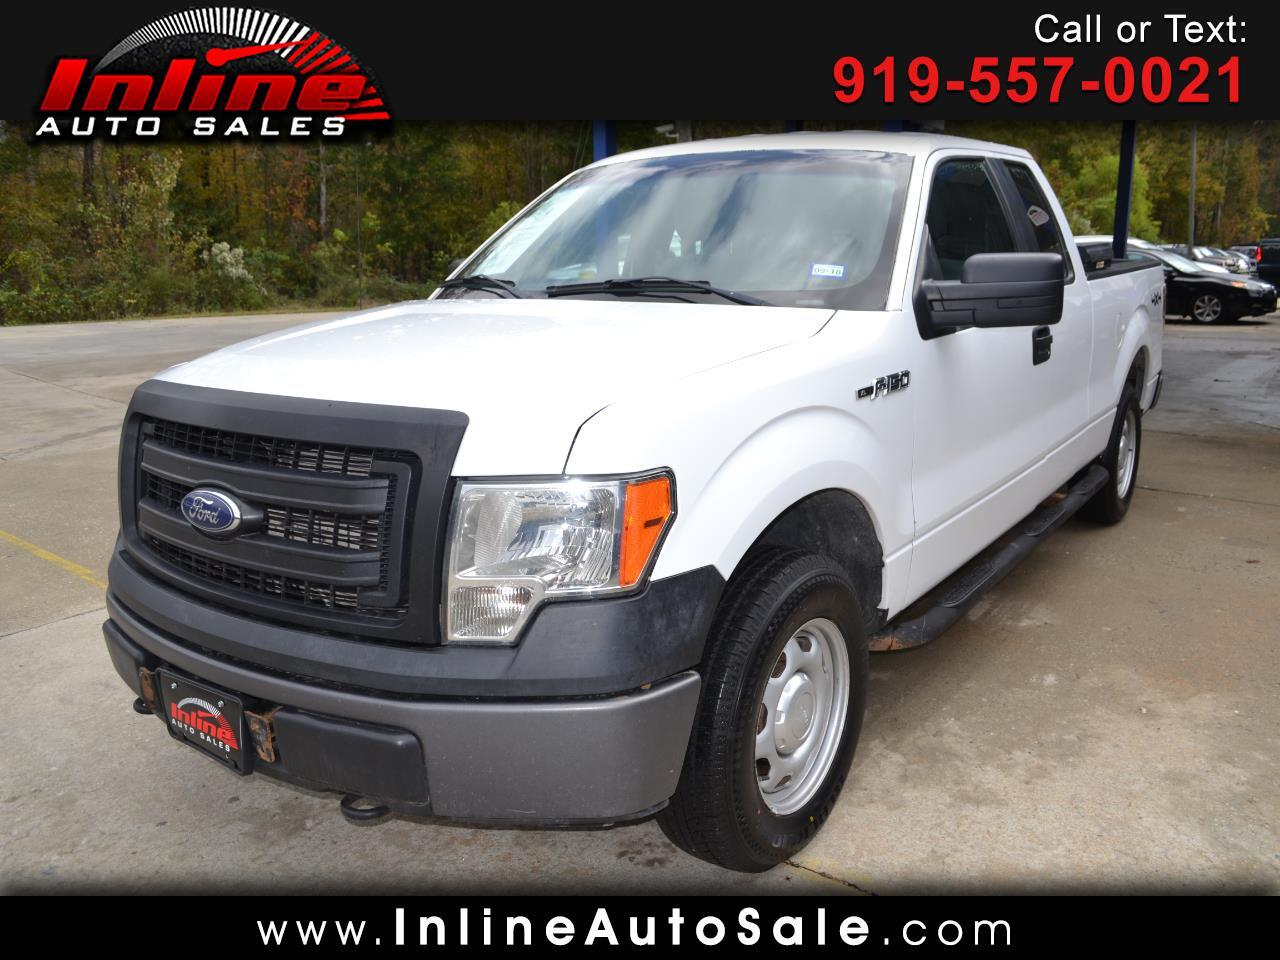 2014 Ford F-150 4WD SuperCab 163